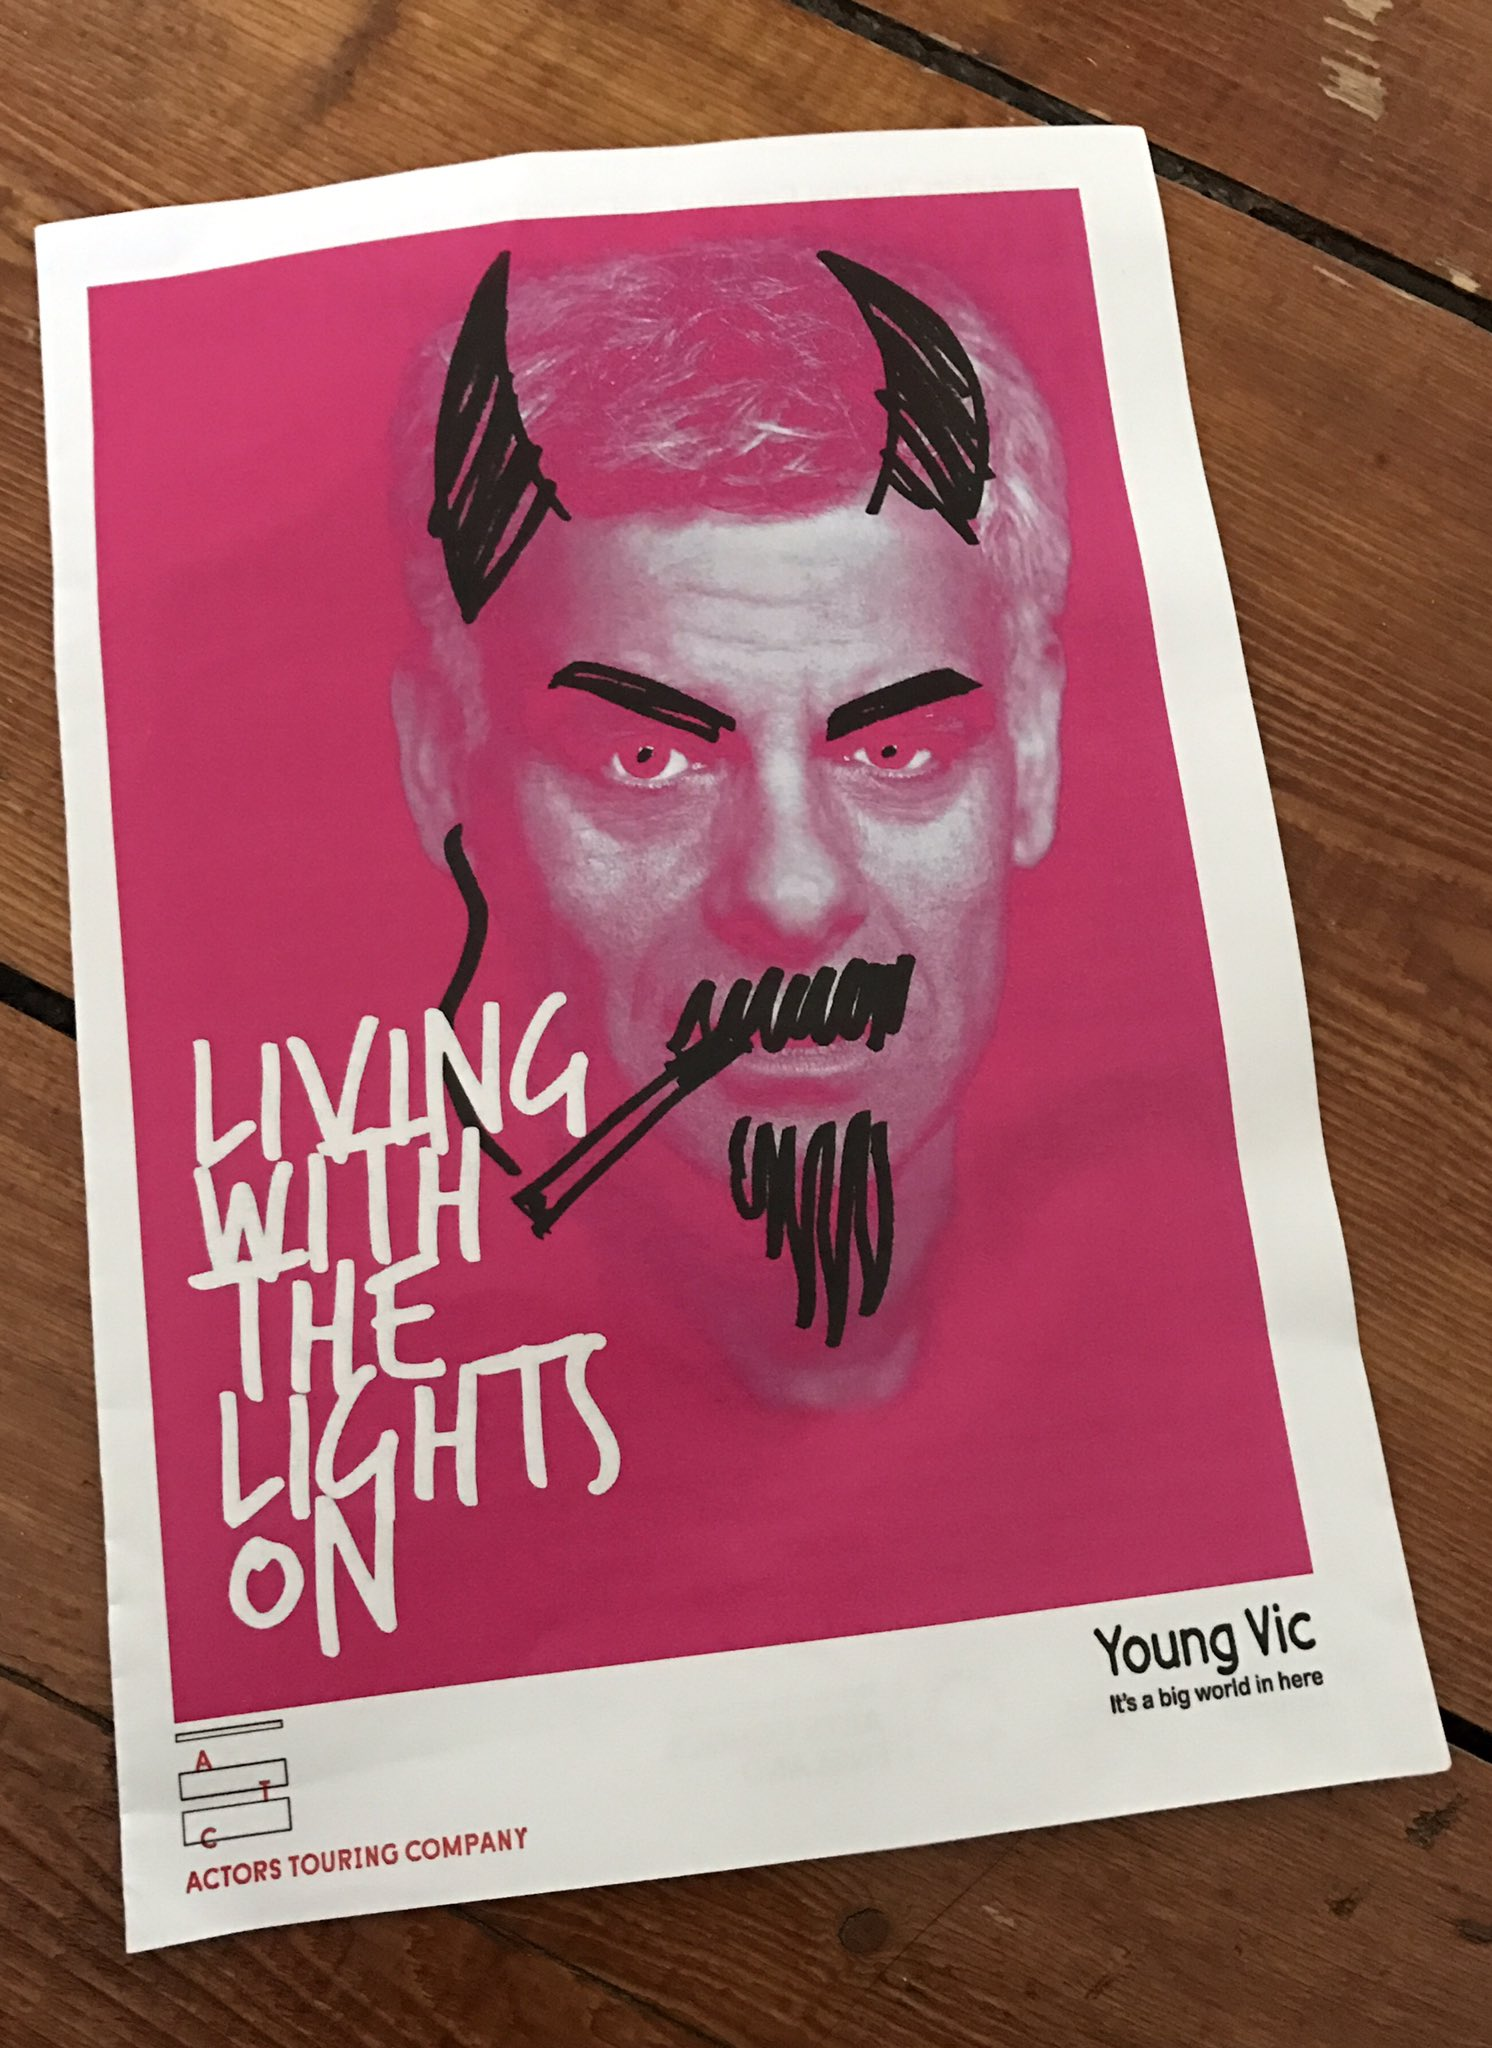 #LivingWithTheLightsOn with @victoria_vardy at @youngvictheatre yesterday. Easily one of the best things I've seen this year. What a story. https://t.co/6P0tQx6E4D